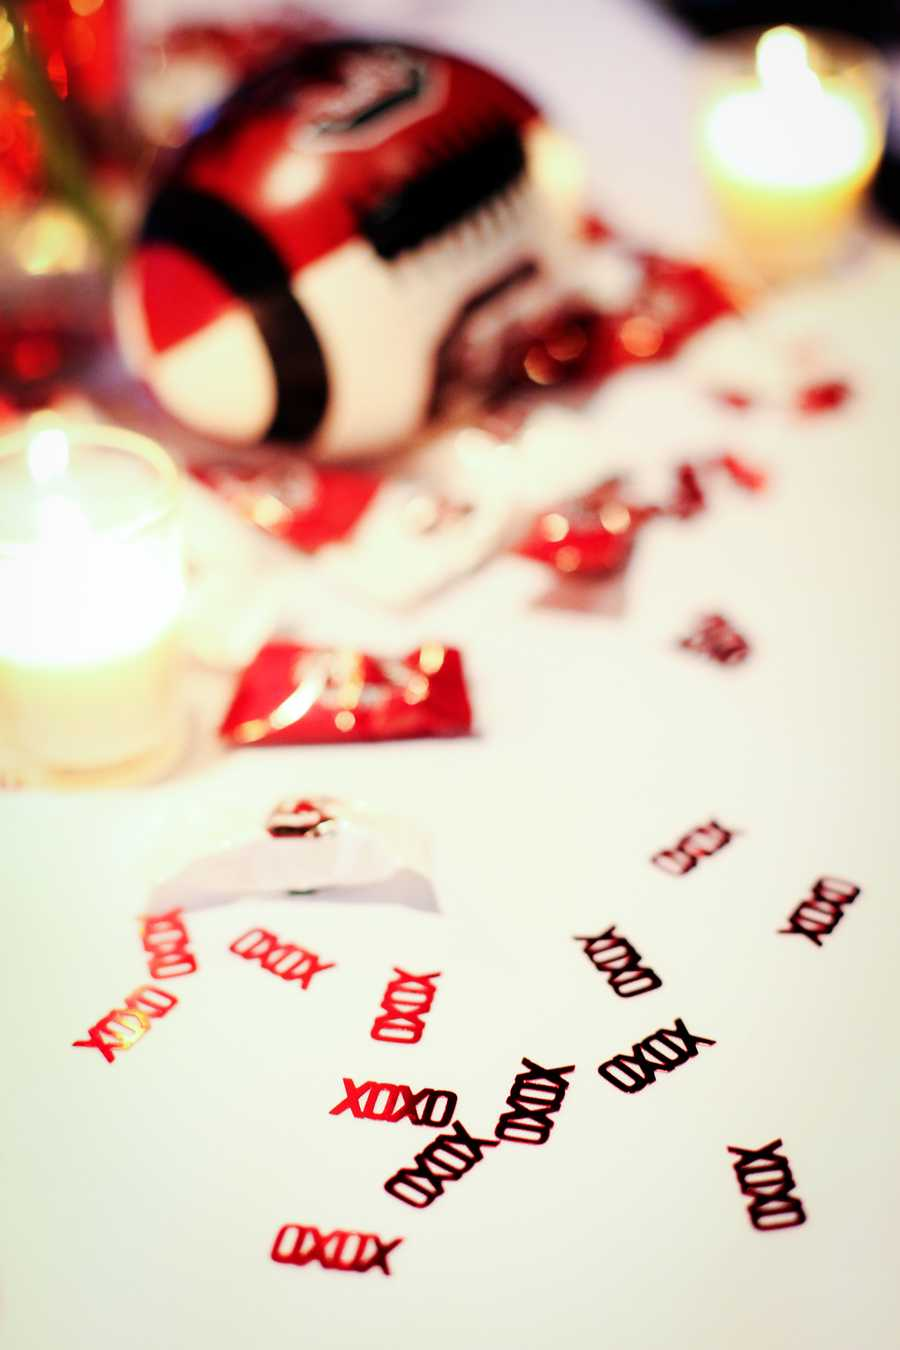 The tables can be decorated with the teams colors of red and black using confetti and a football. Elegant but still showing the sports theme.